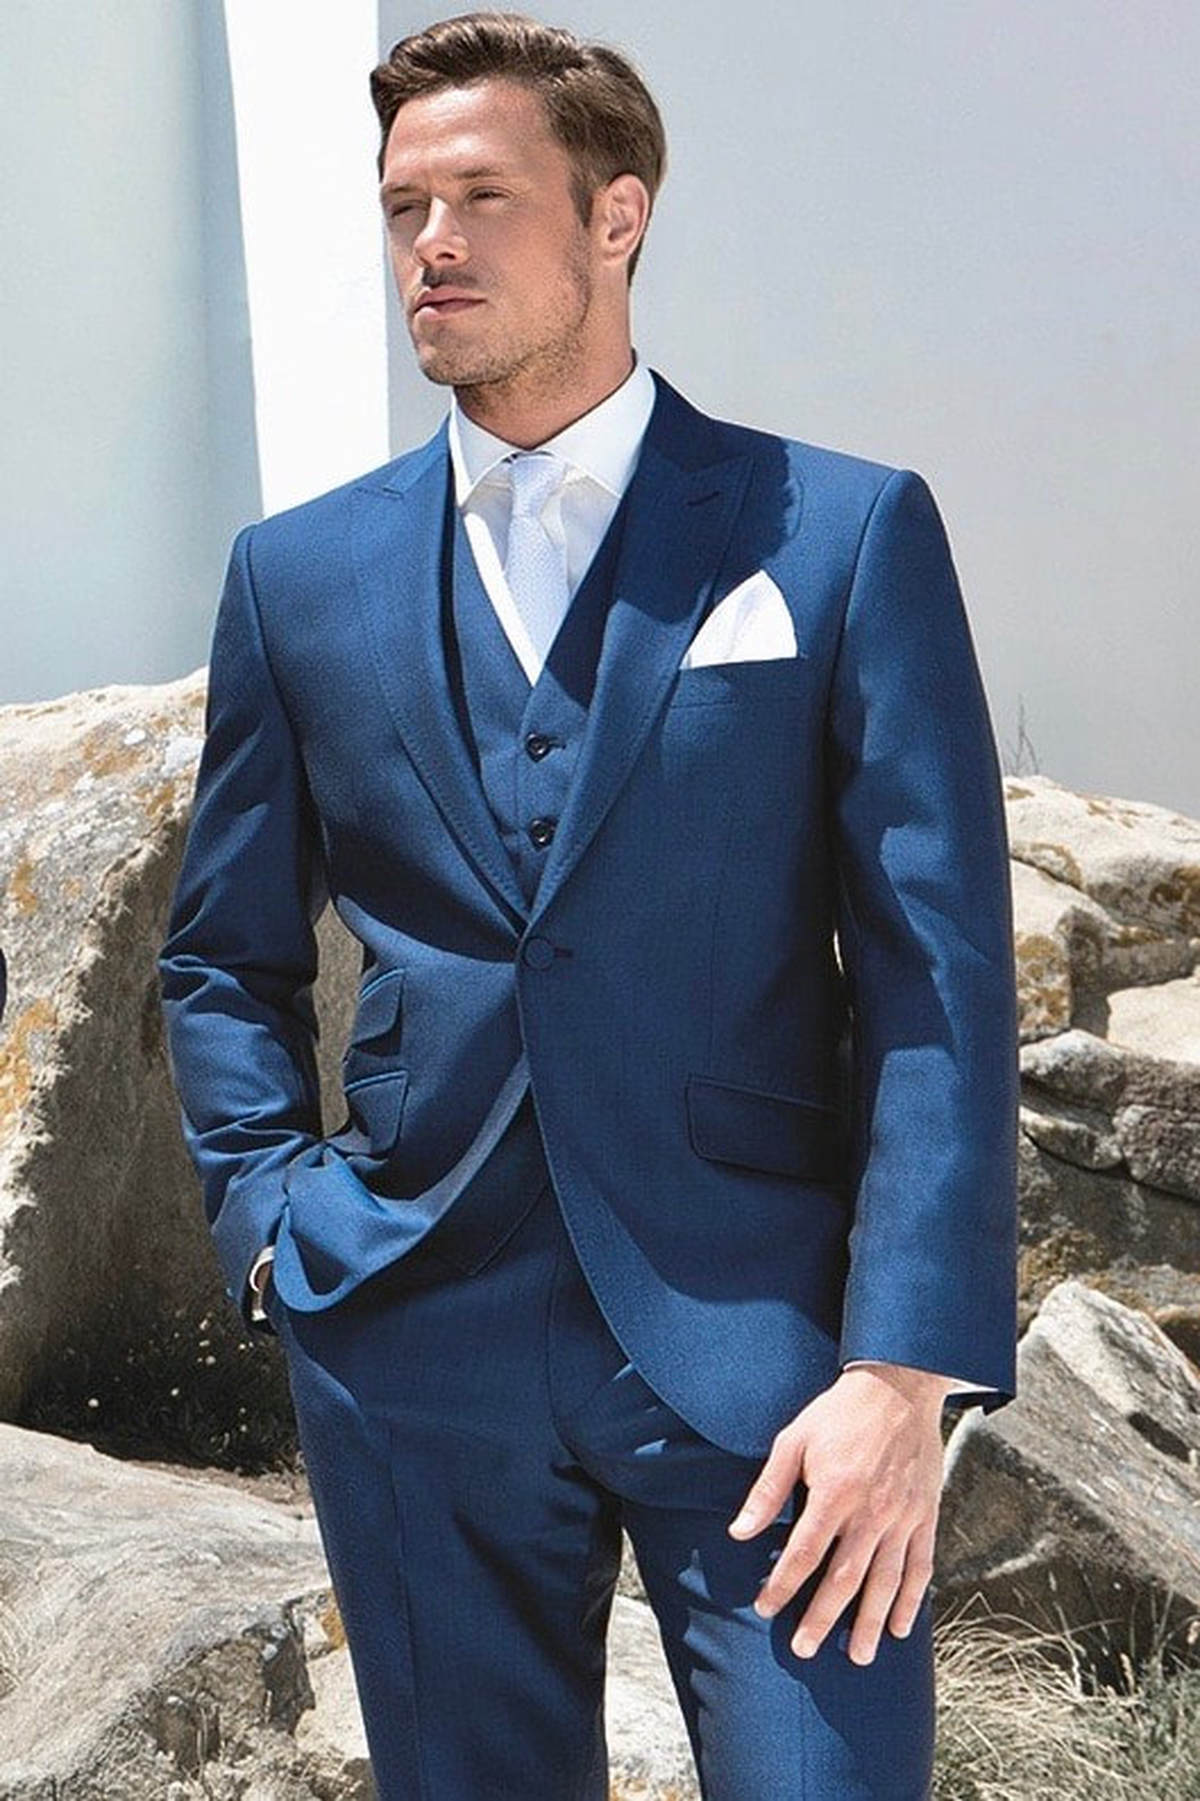 Wedding Suits; Royal Blue Lightweight Mohair - PARKERS FORMAL WEAR